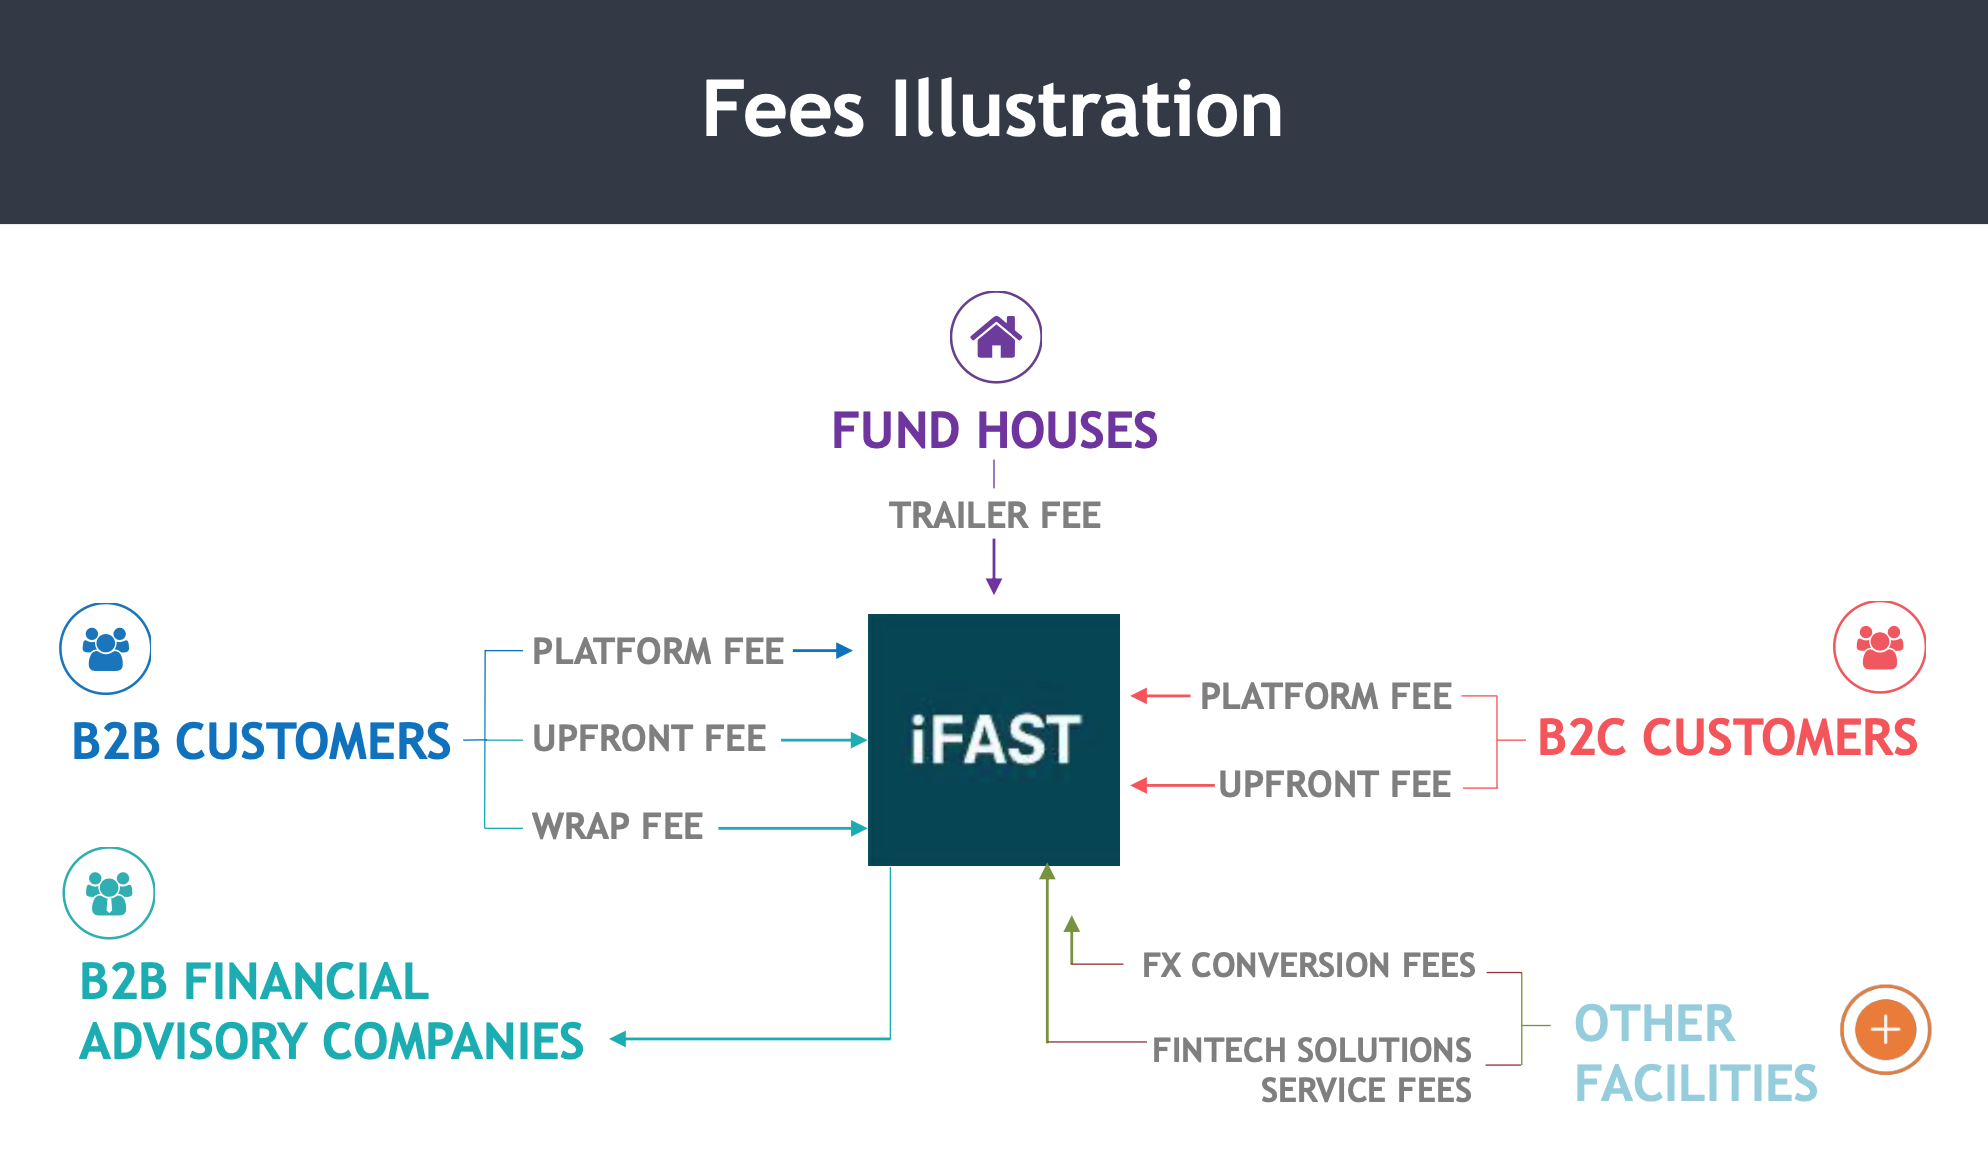 iFAST fees illusratiion